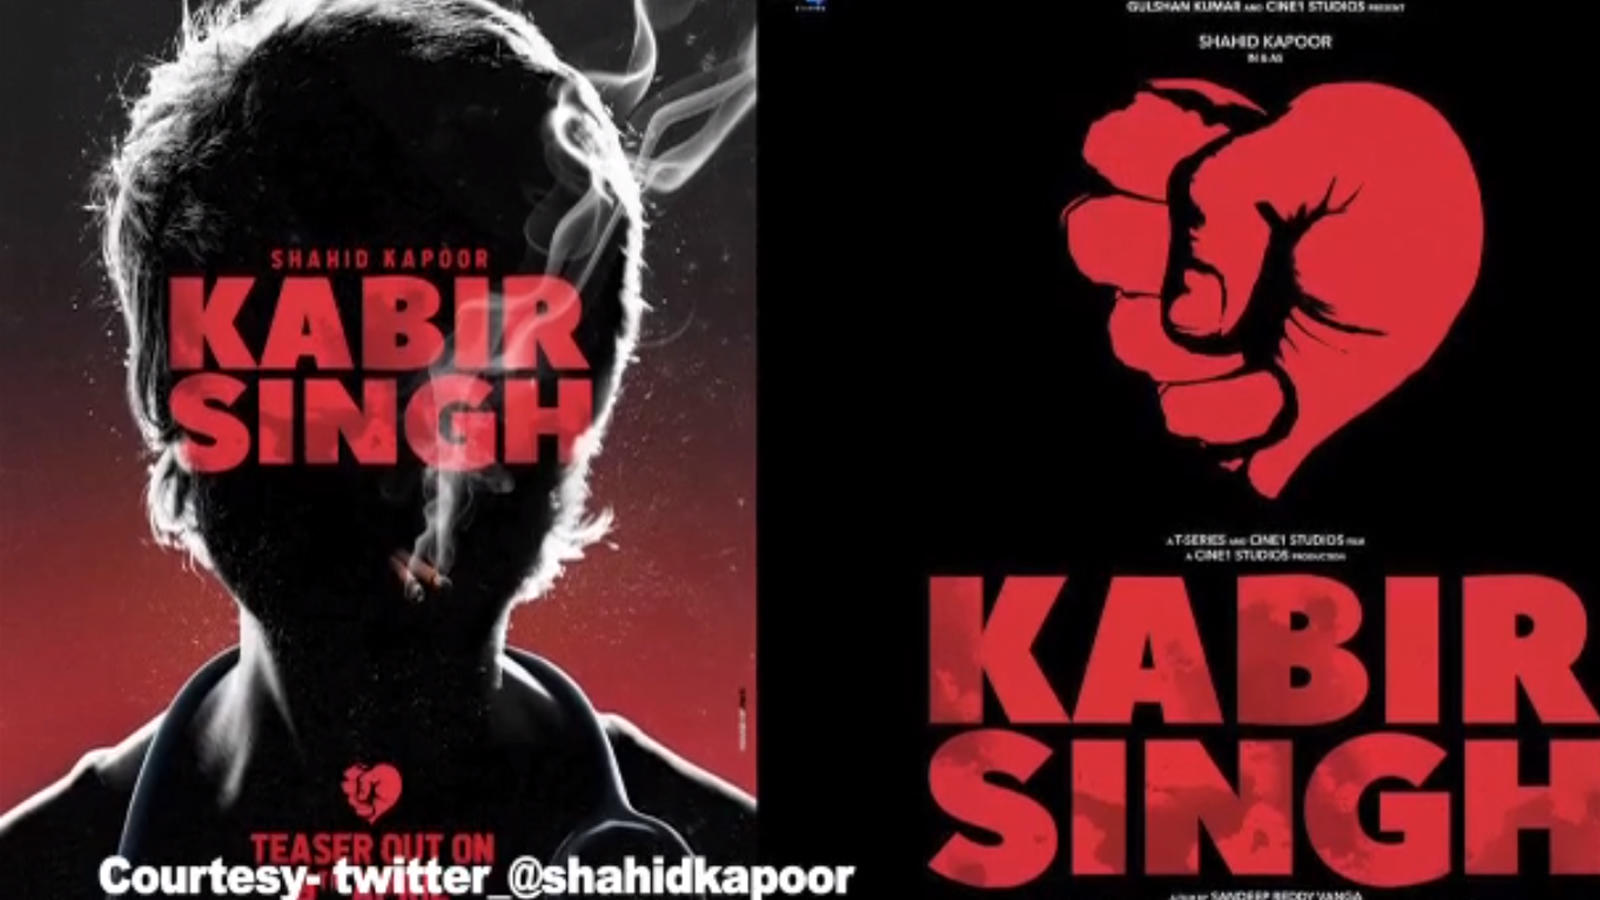 46d3a10f 'Kabir Singh' teaser out: Shahid Kapoor nails it with intense angry look |  Hindi Movie News - Bollywood - Times of India